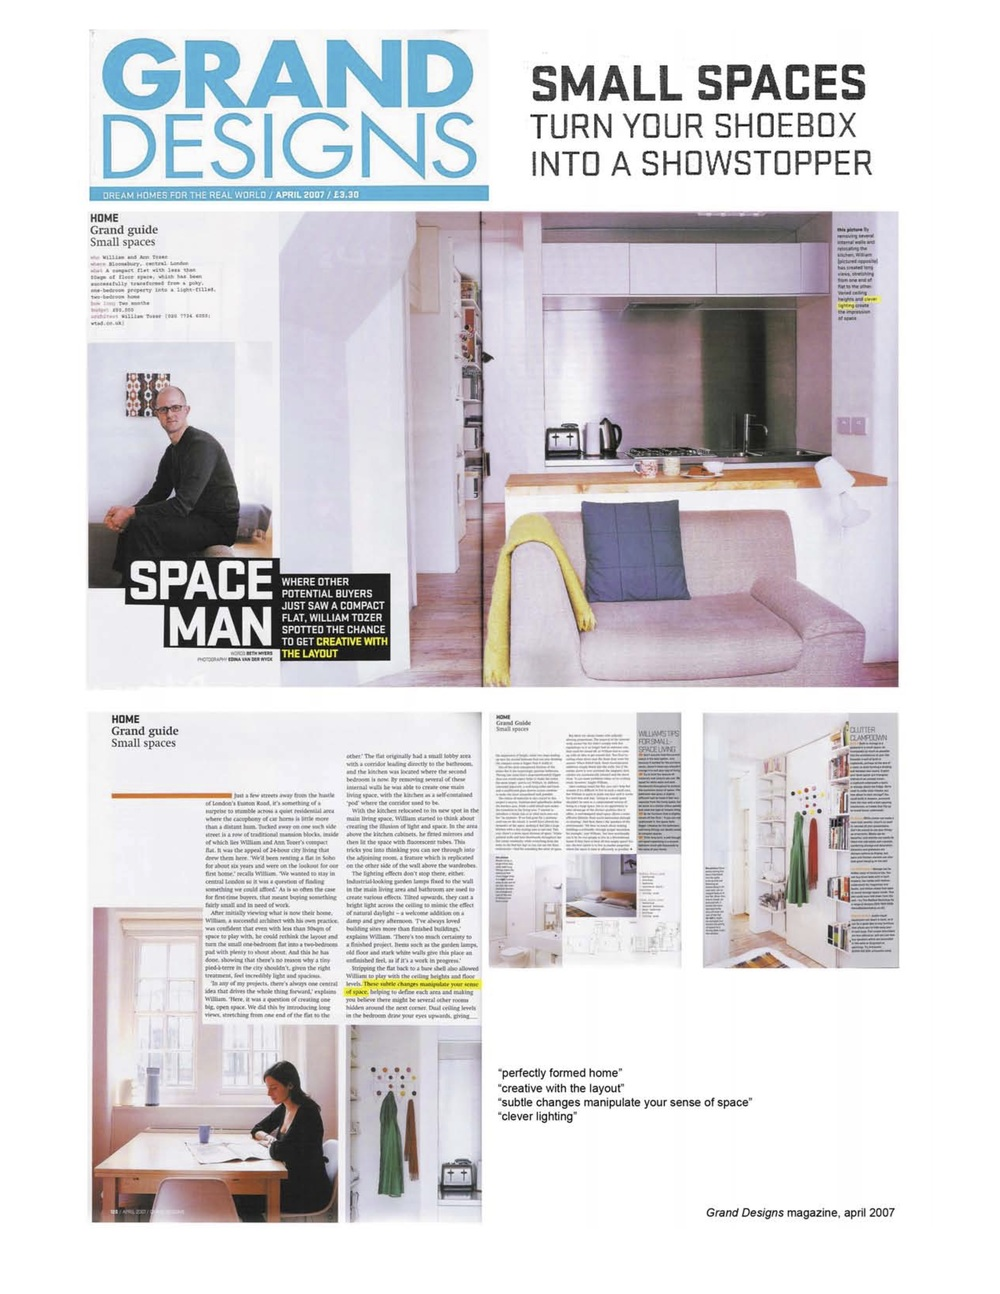 WILLIAM_TOZER_architecture_&_design_press coverage 1.jpg